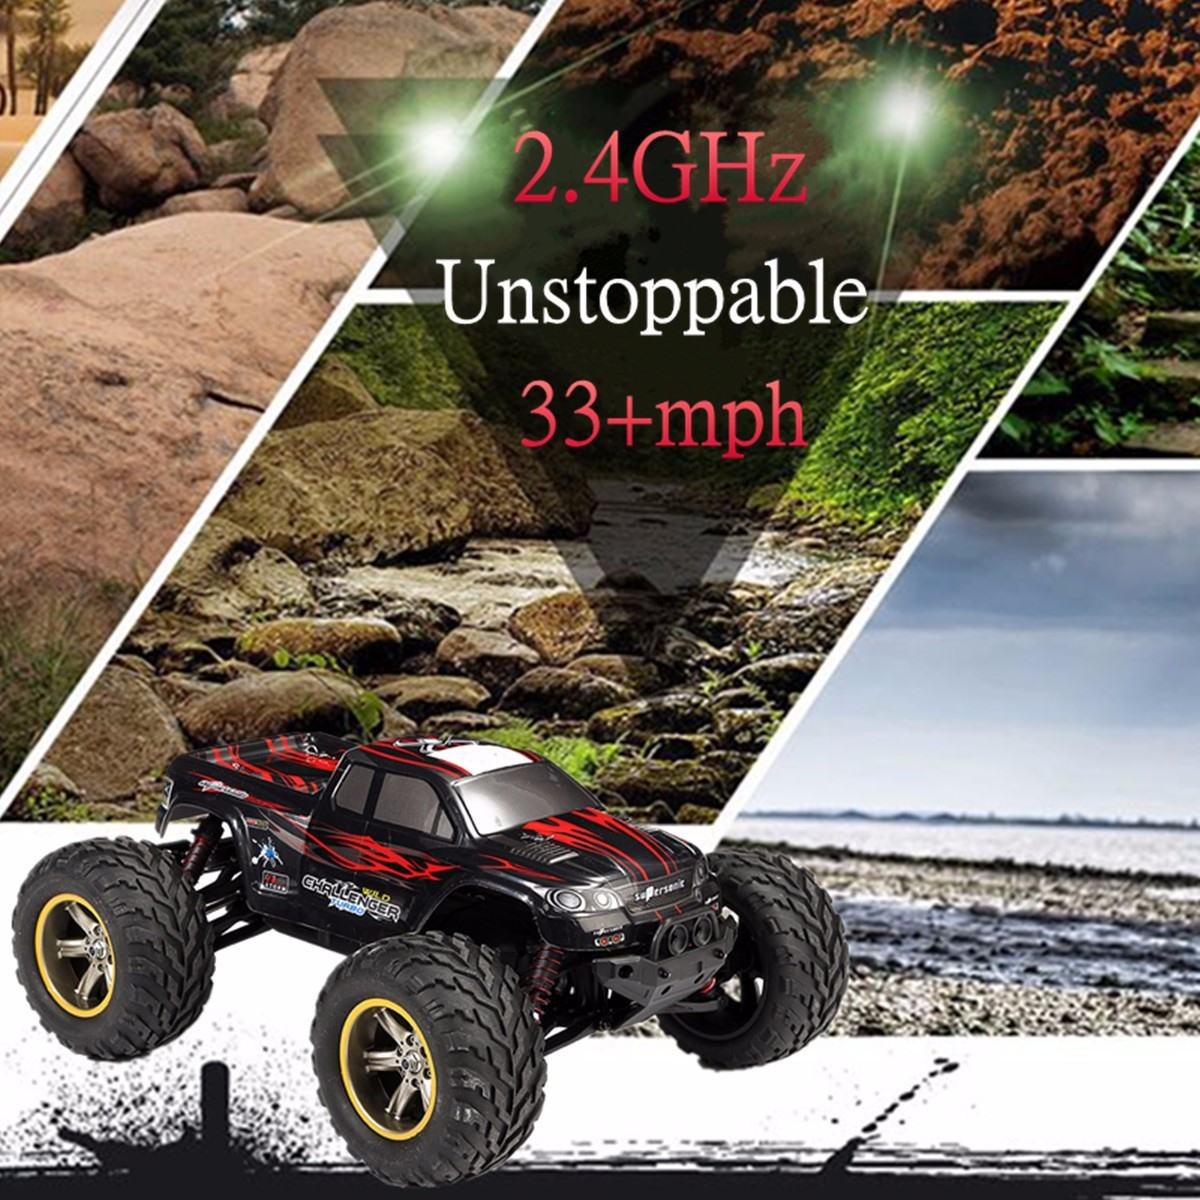 RC Car Impermeable S911 RC SUV Coche 1/12 2.4GHz 2WD 6CH Alta Velocidad Control Remoto Cimbing Car For Boys Kids Transmitter